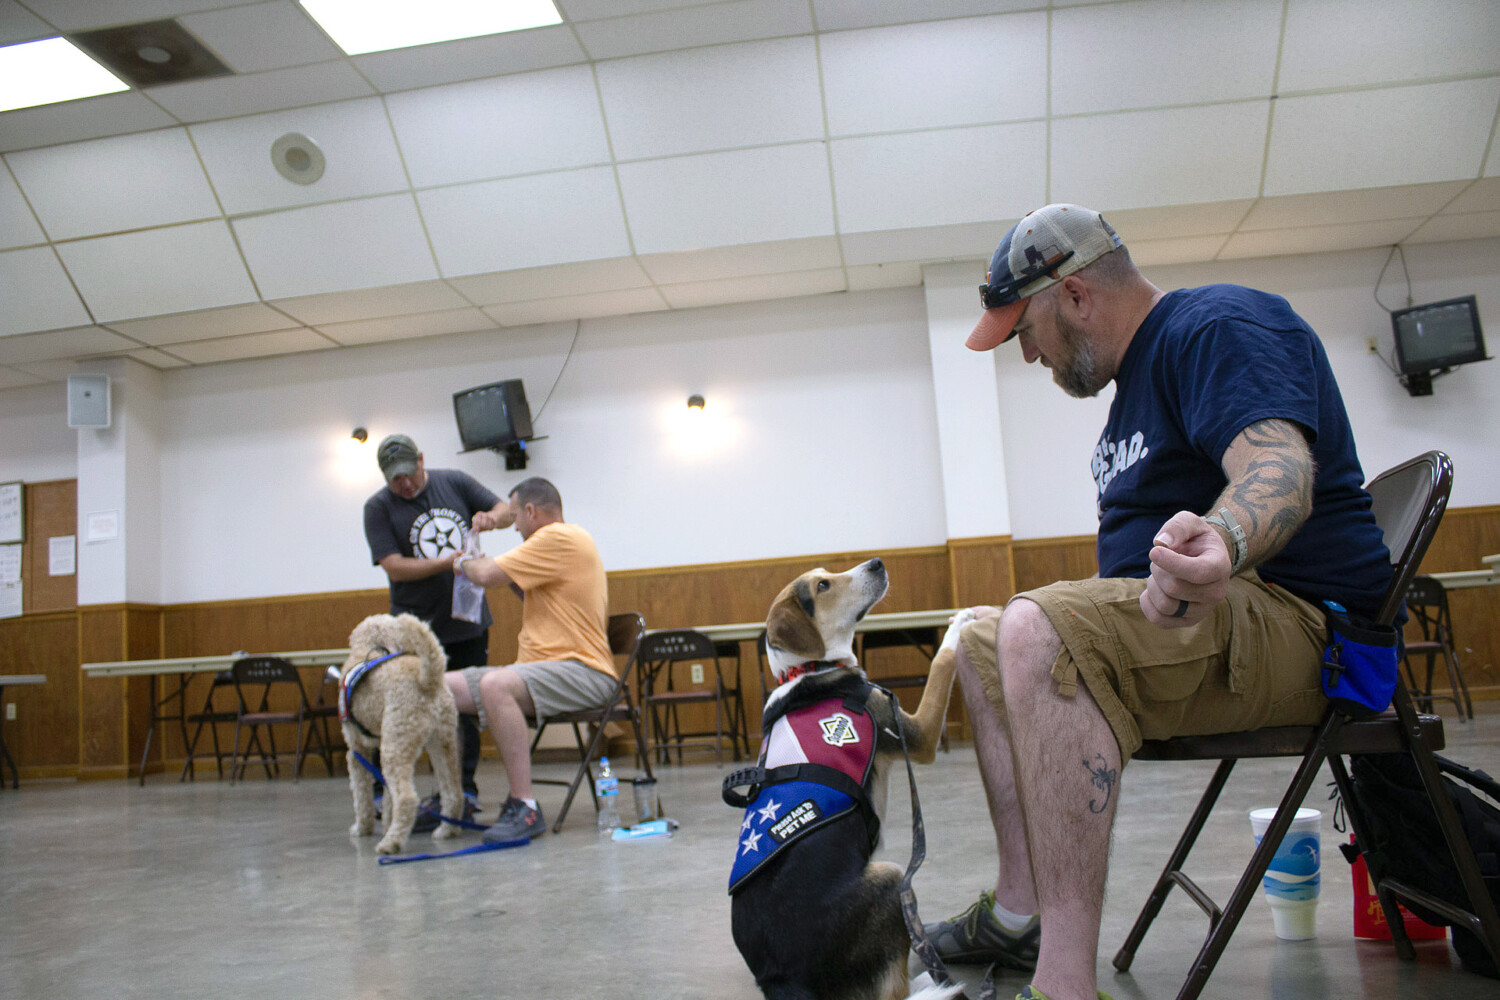 K9s on the Front Line pairs veterans with a dog who has their back - CentralMaine.com